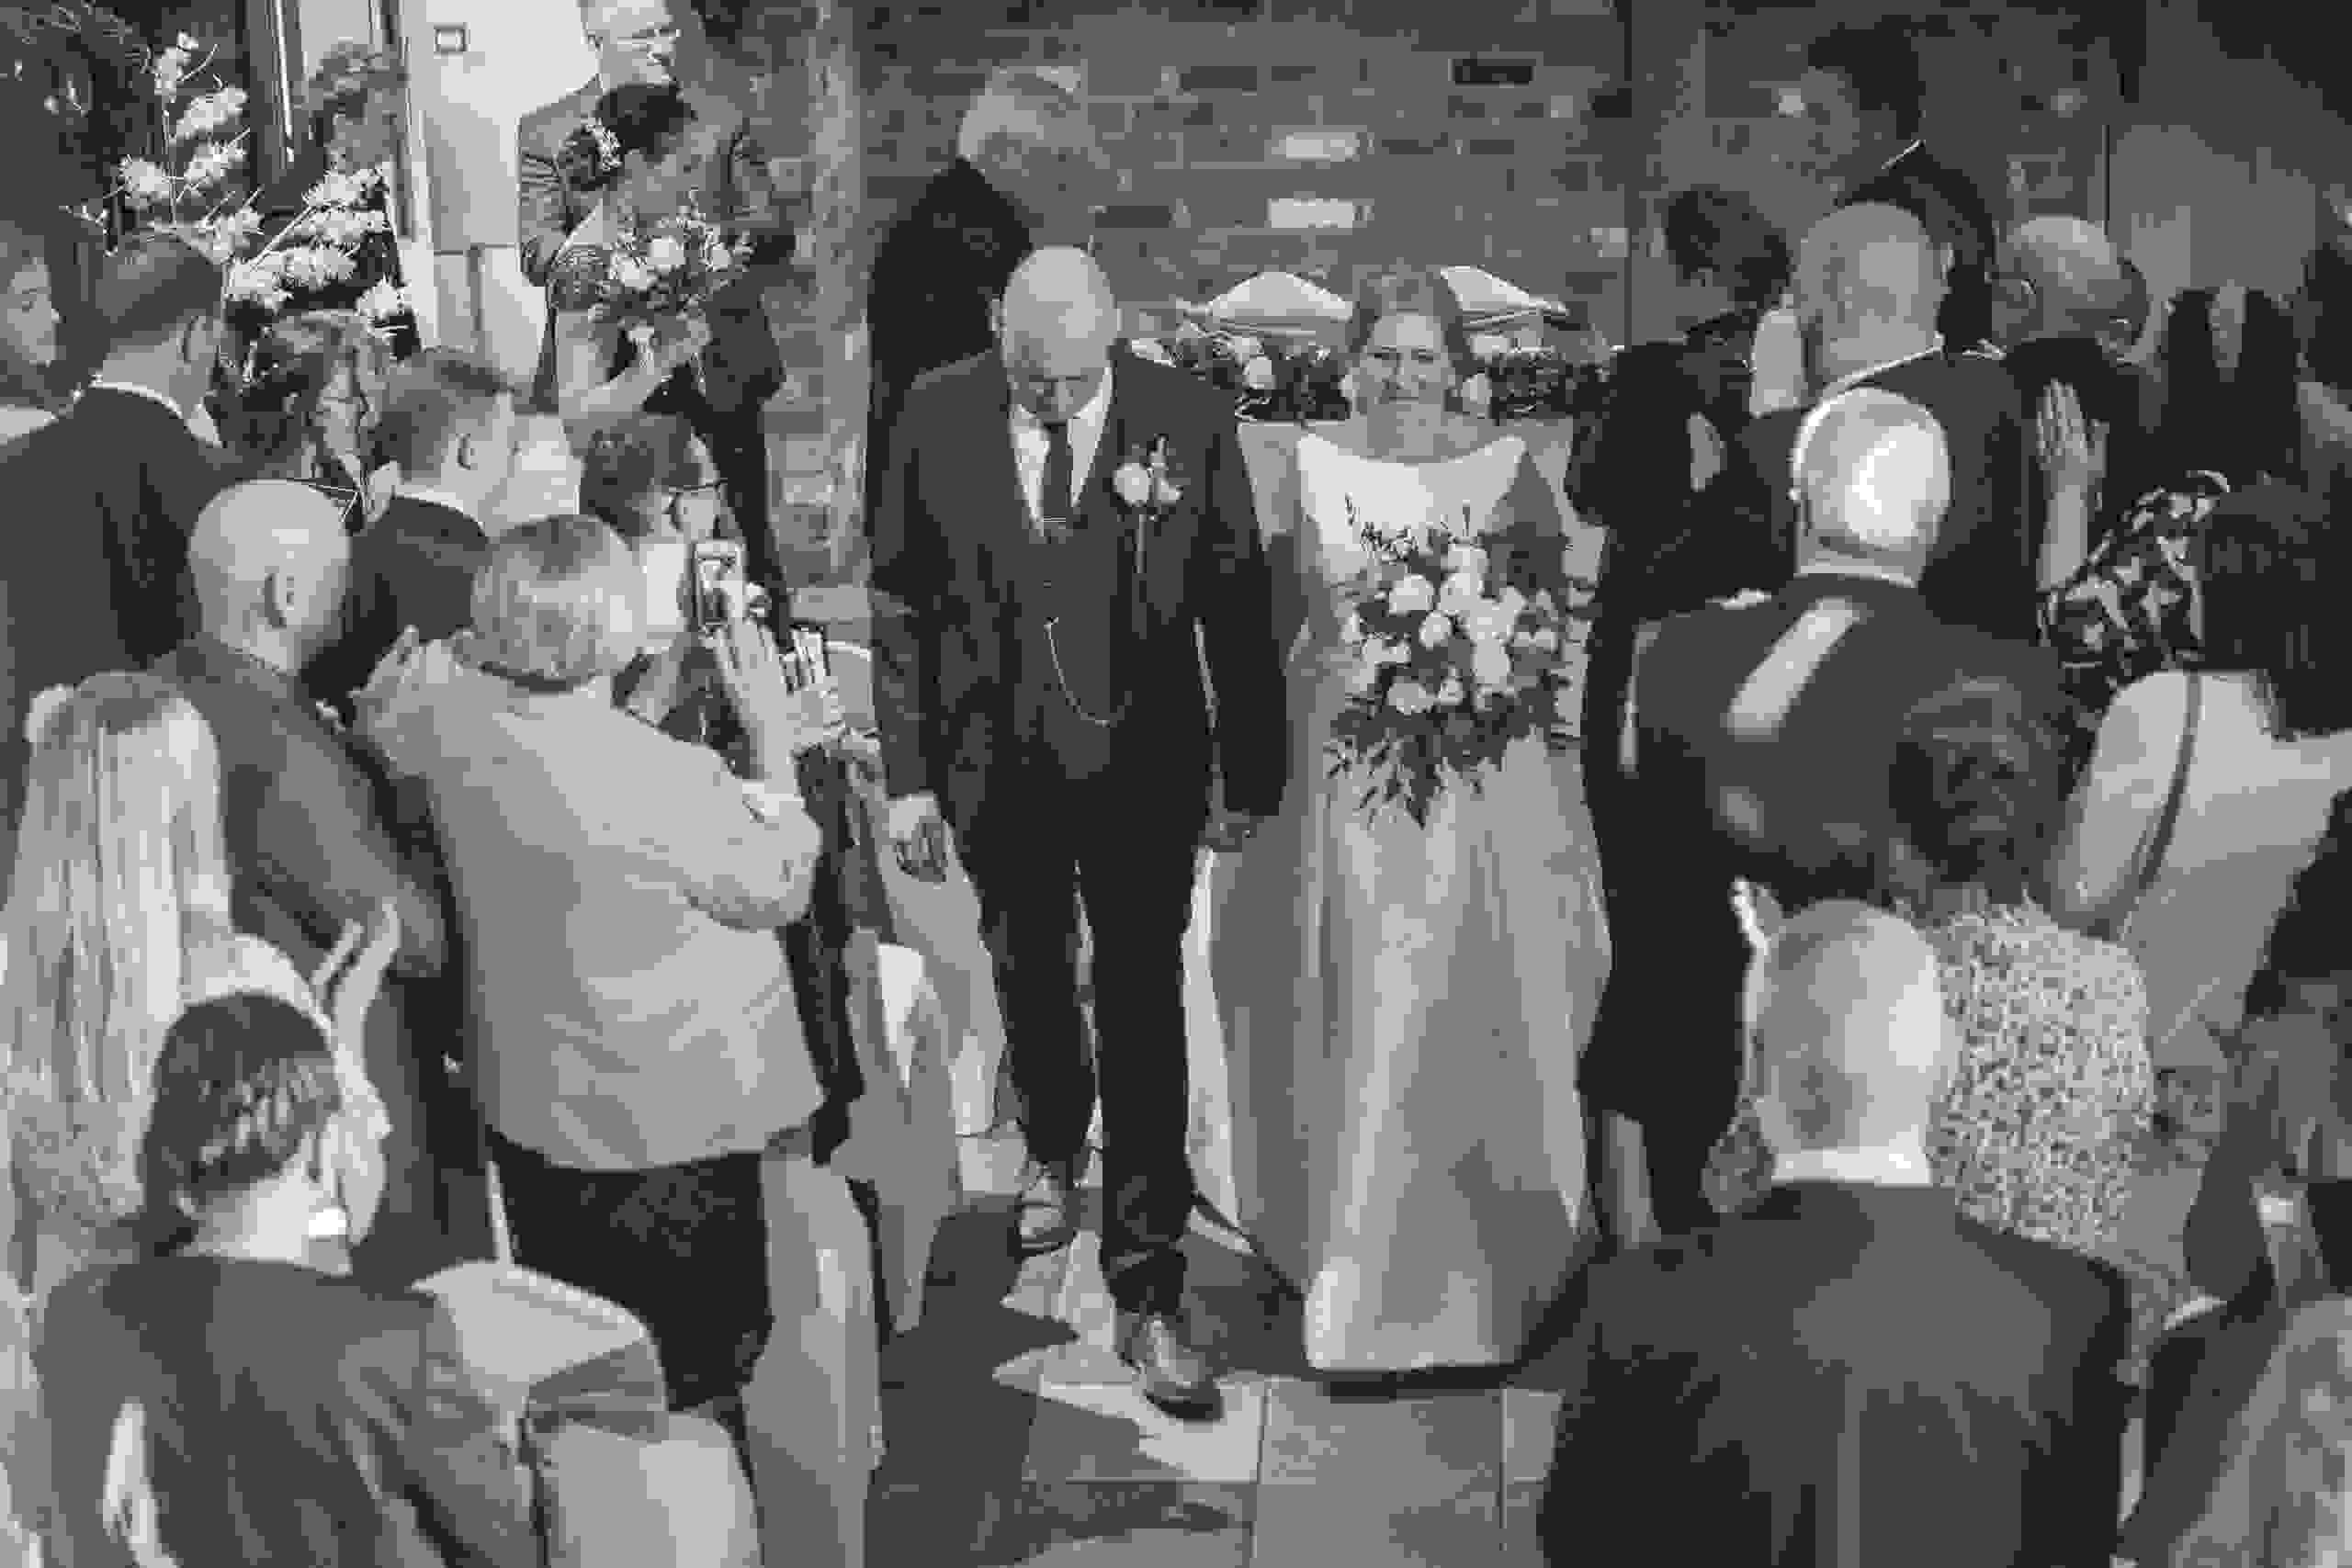 Wedding Videos and films, creative broadcast wedding films within Covid-19